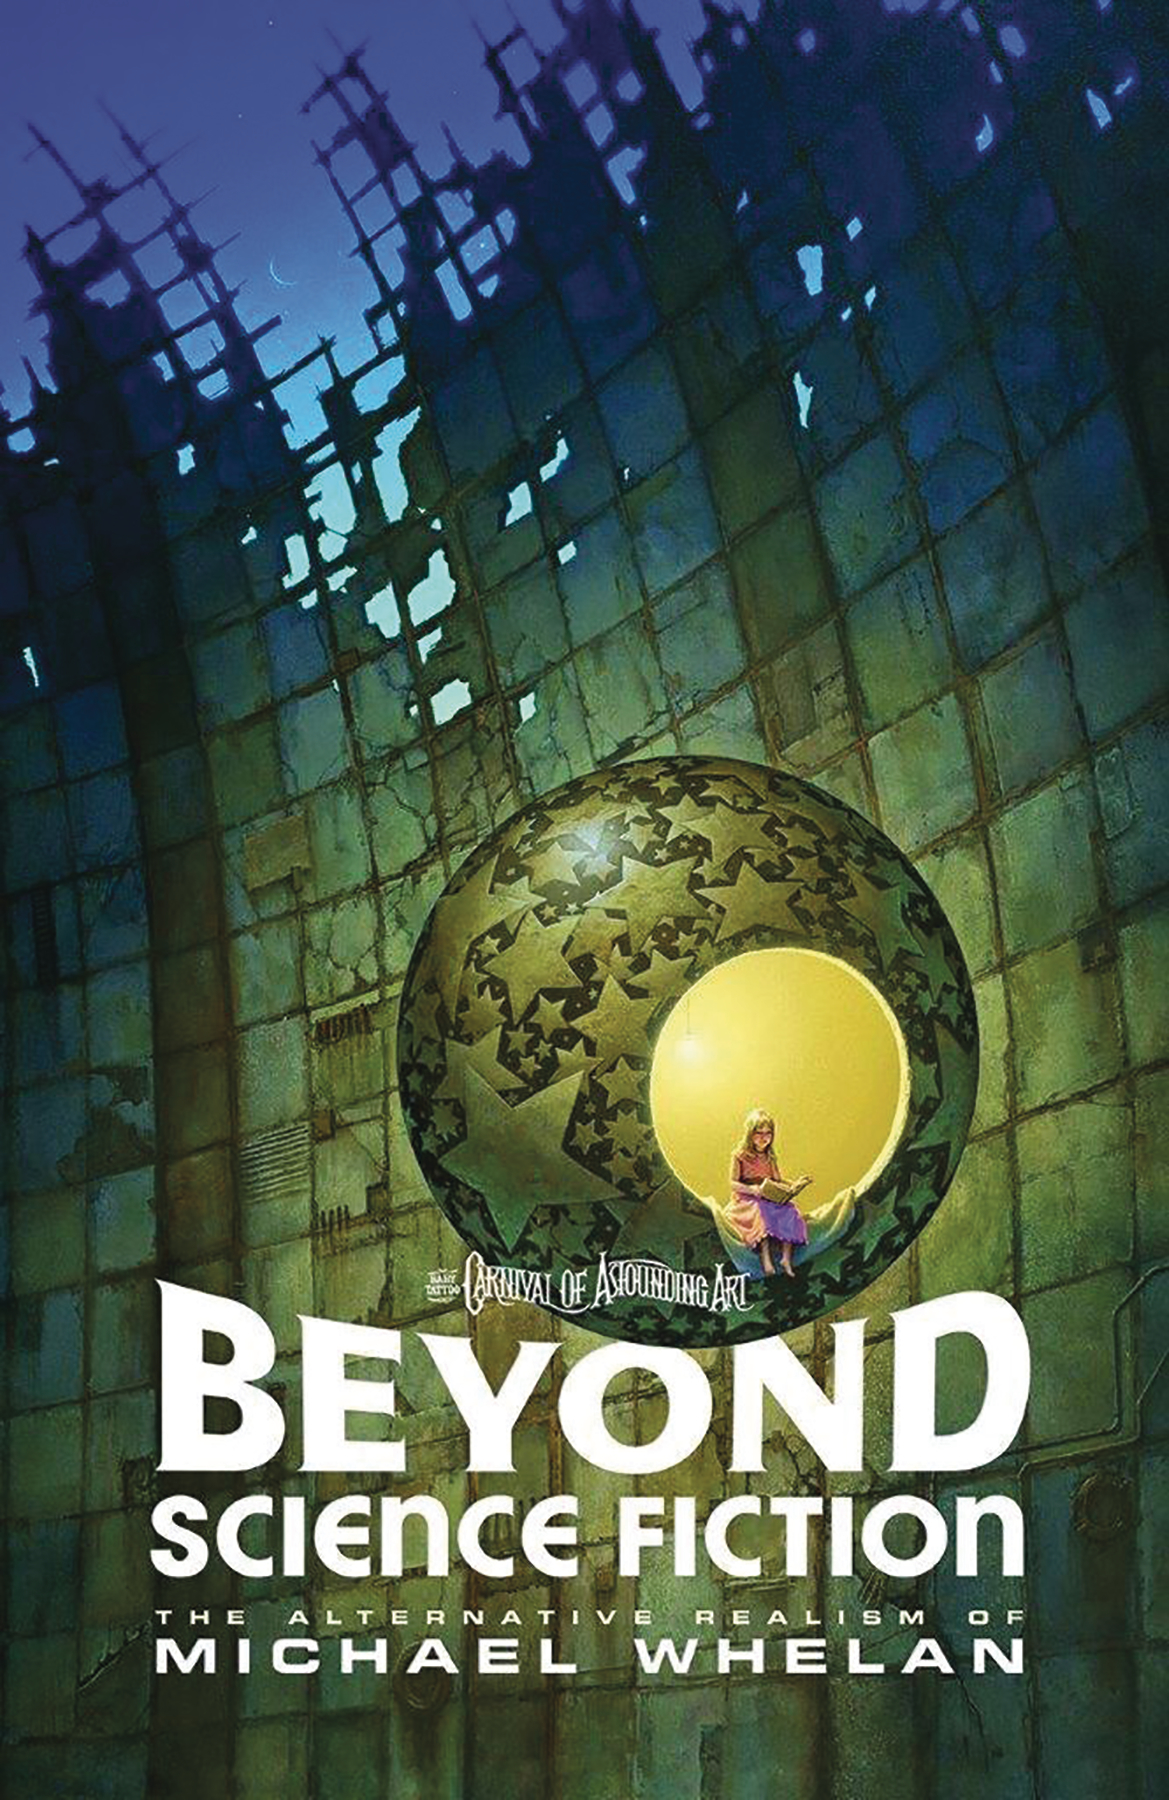 BEYOND SCIENCE FICTION ALTERNATIVE REALISM MICHAEL WHELAN (R